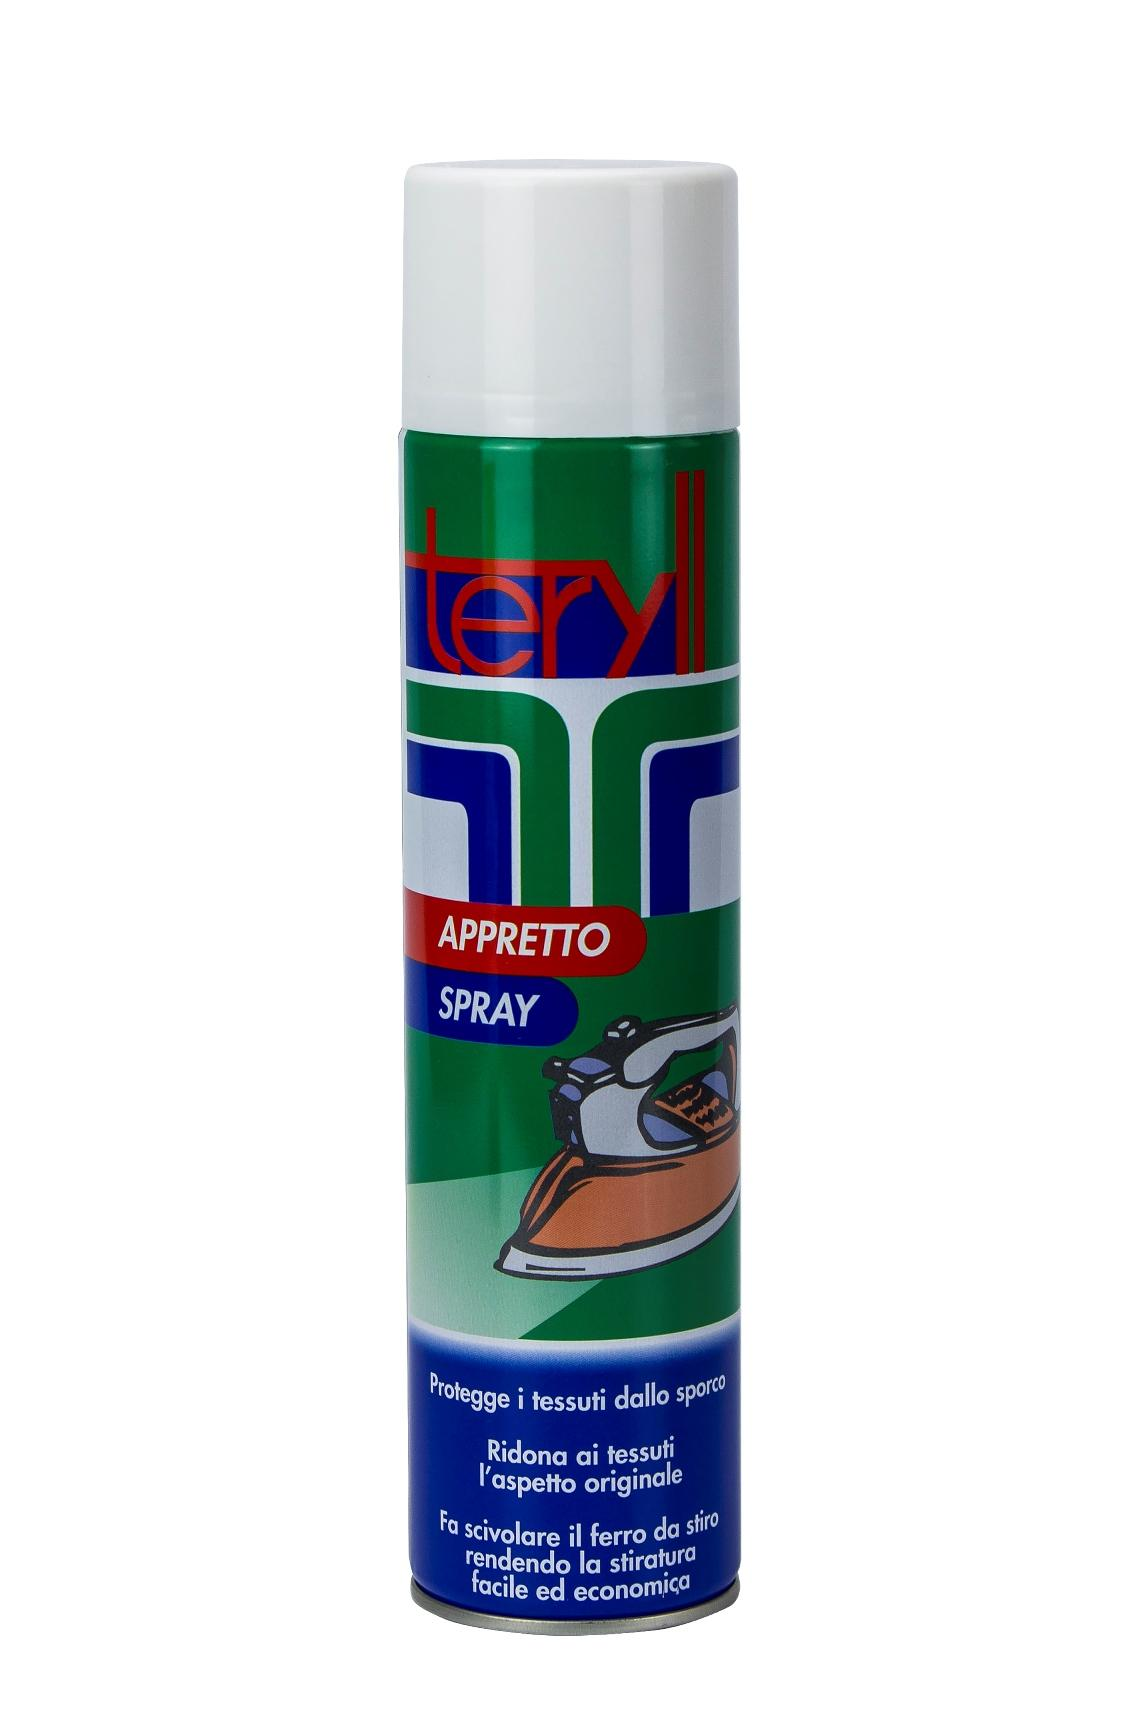 APPRETTO SPRAY TERYLL 600 ml